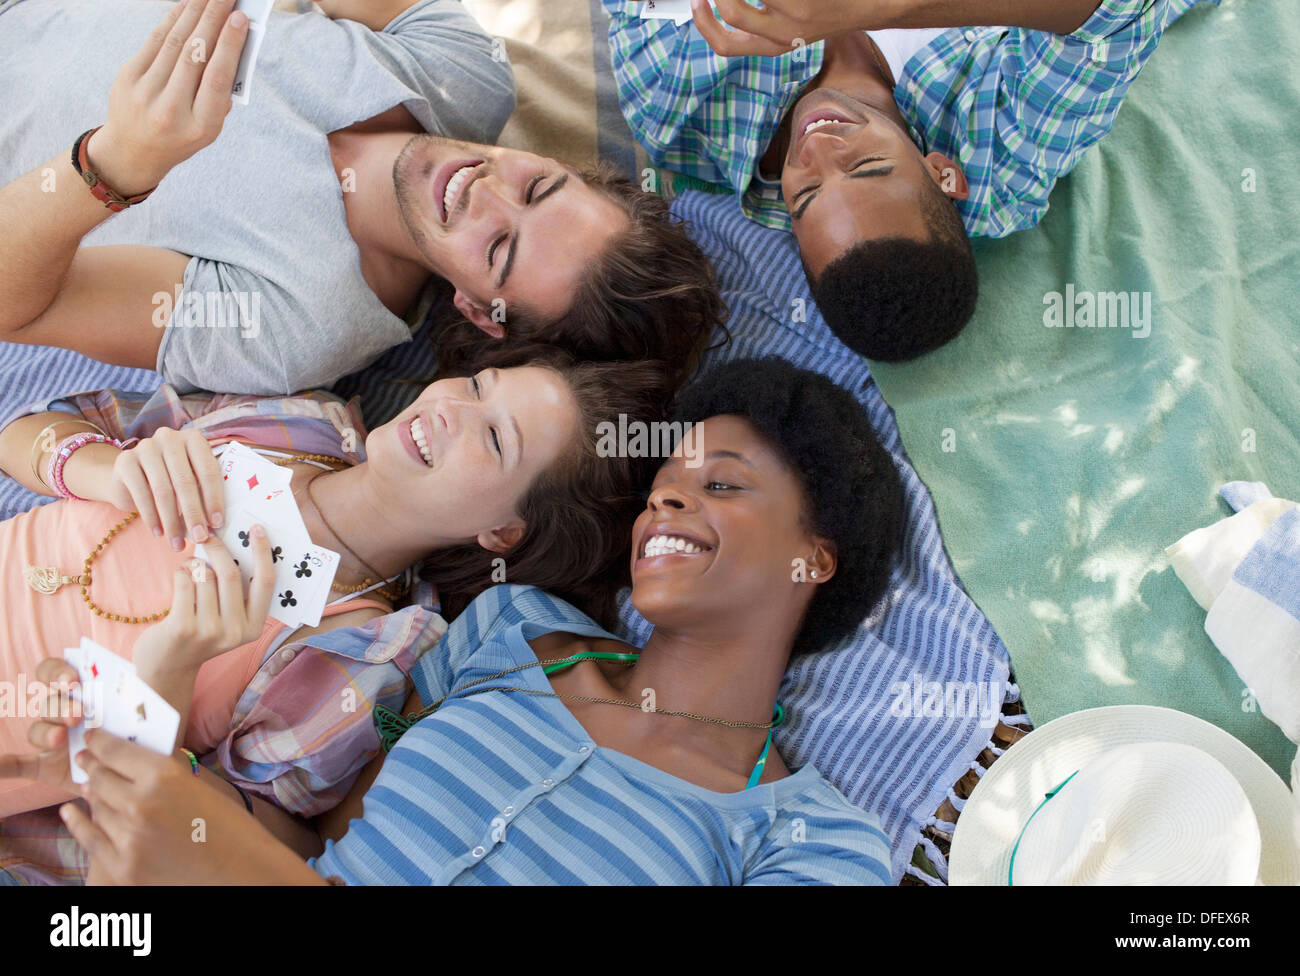 Friends playing cards on blankets outdoors - Stock Image